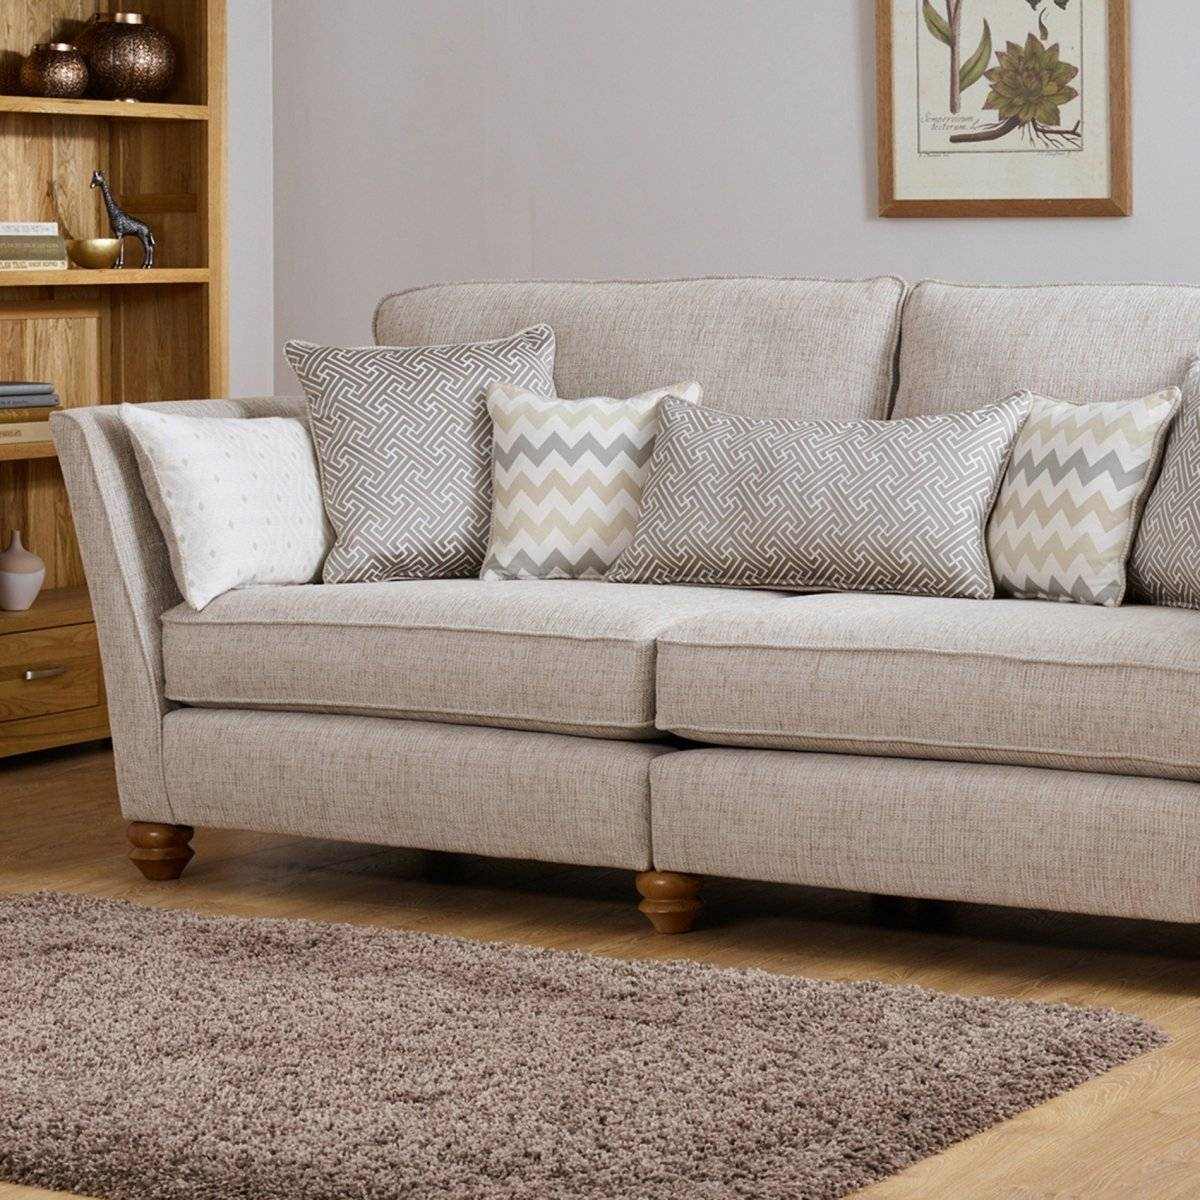 Gainsborough 4 Seater Sofa In Black | Oak Furniture Land inside Four Seater Sofas (Image 12 of 30)